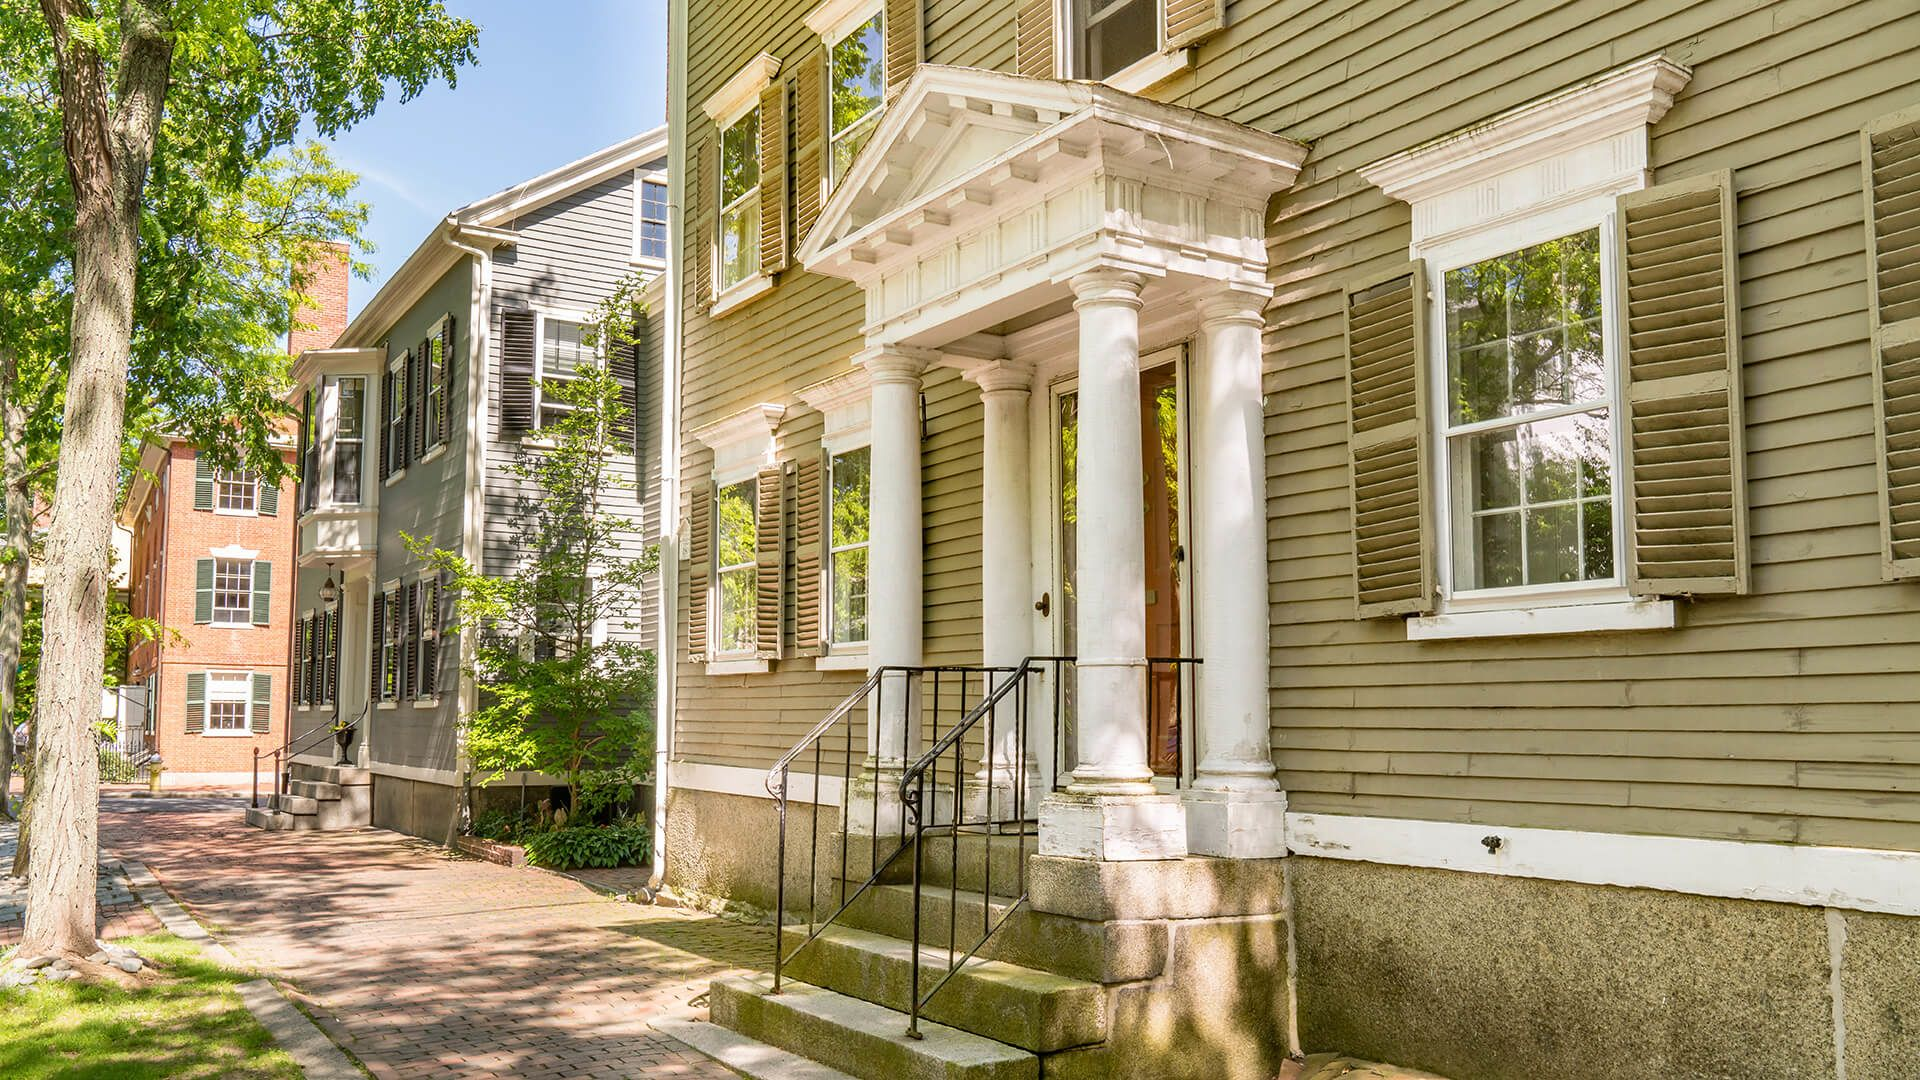 Historic Homes In Salem, Massachusetts